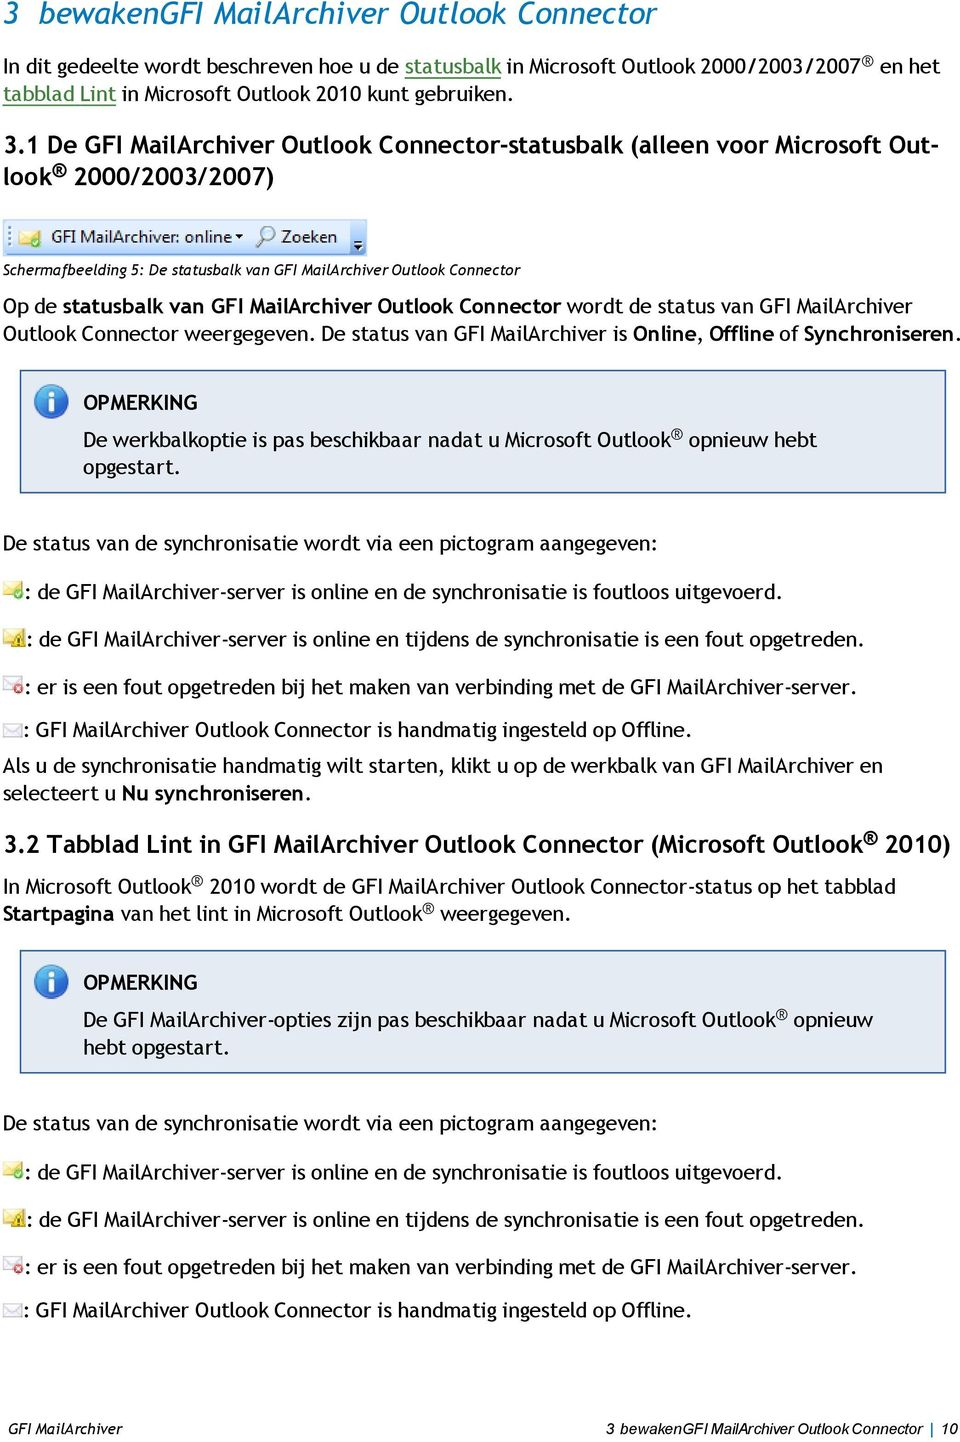 MailArchiver Outlook Connector wordt de status van GFI MailArchiver Outlook Connector weergegeven. De status van GFI MailArchiver is Online, Offline of Synchroniseren.